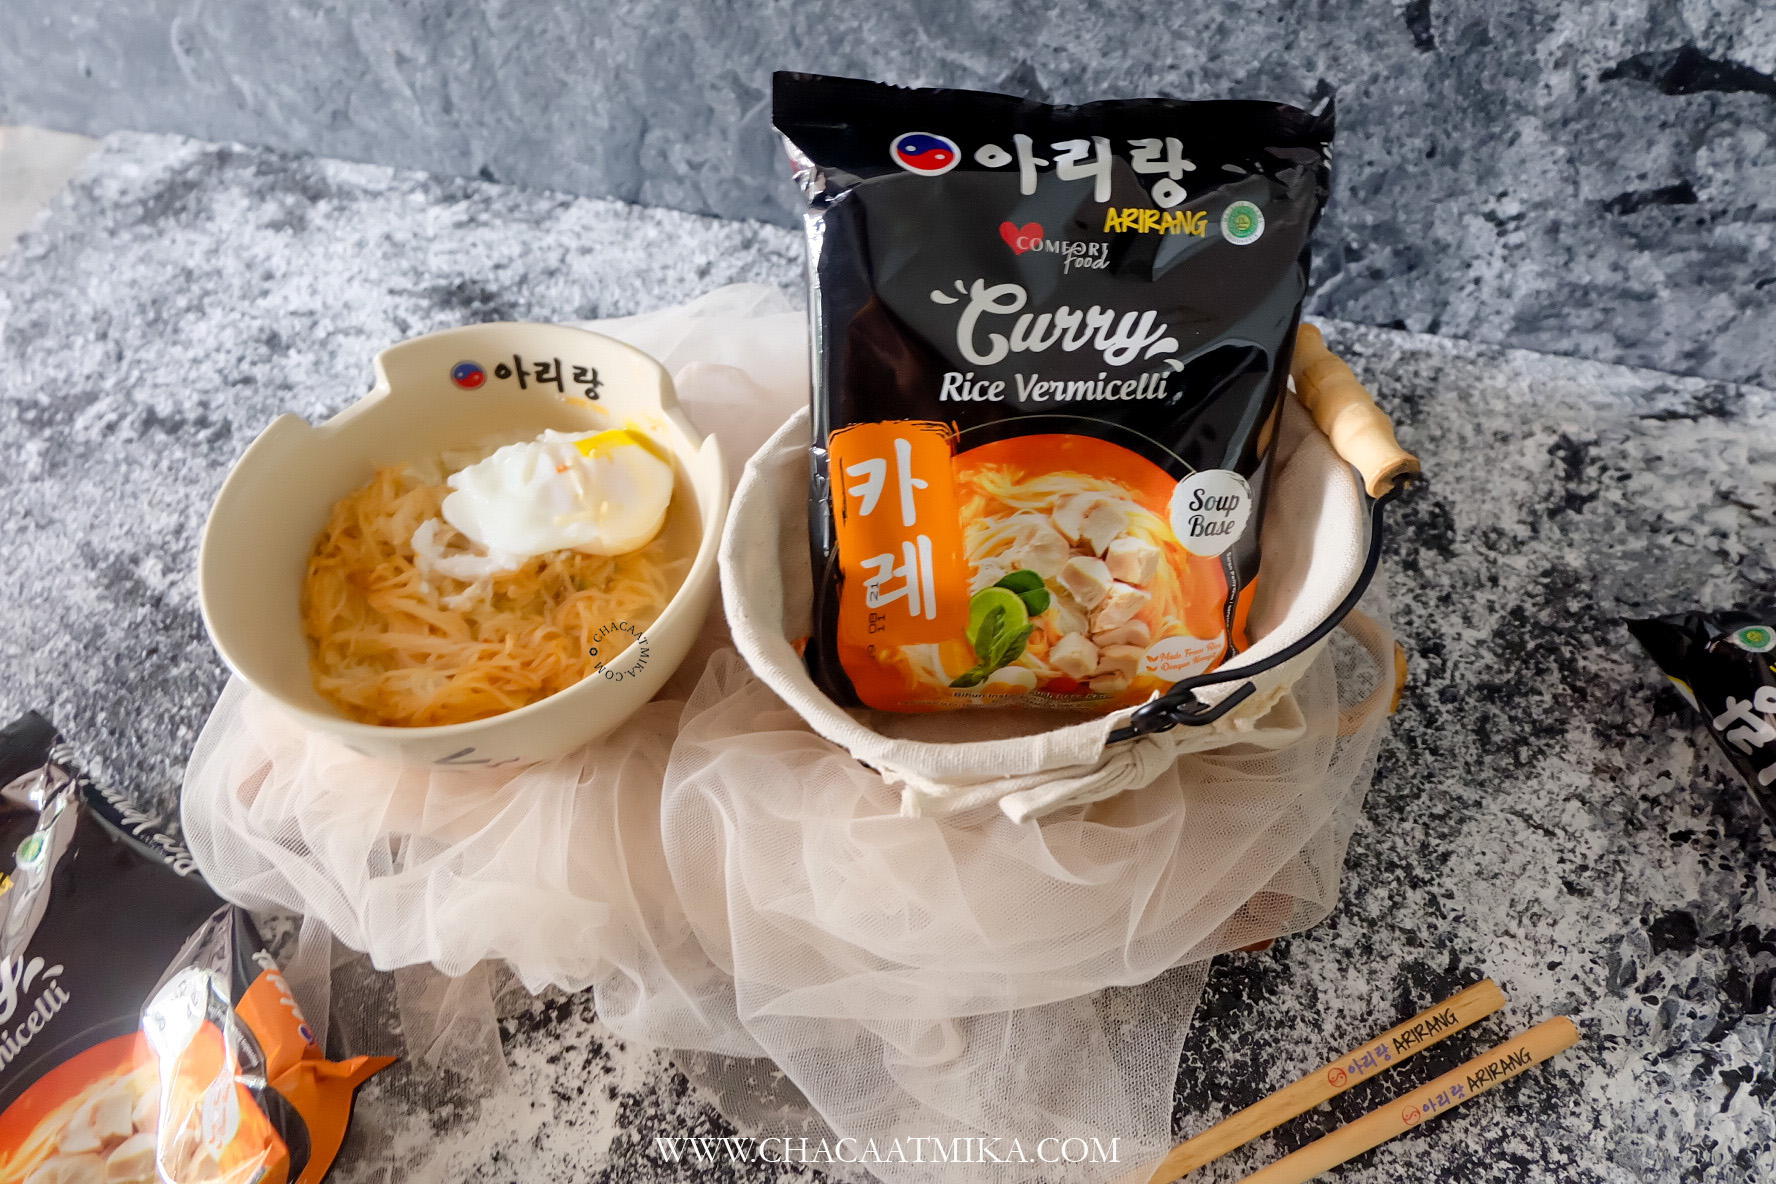 Review Mie Arirang Curry Rice Vermicelli